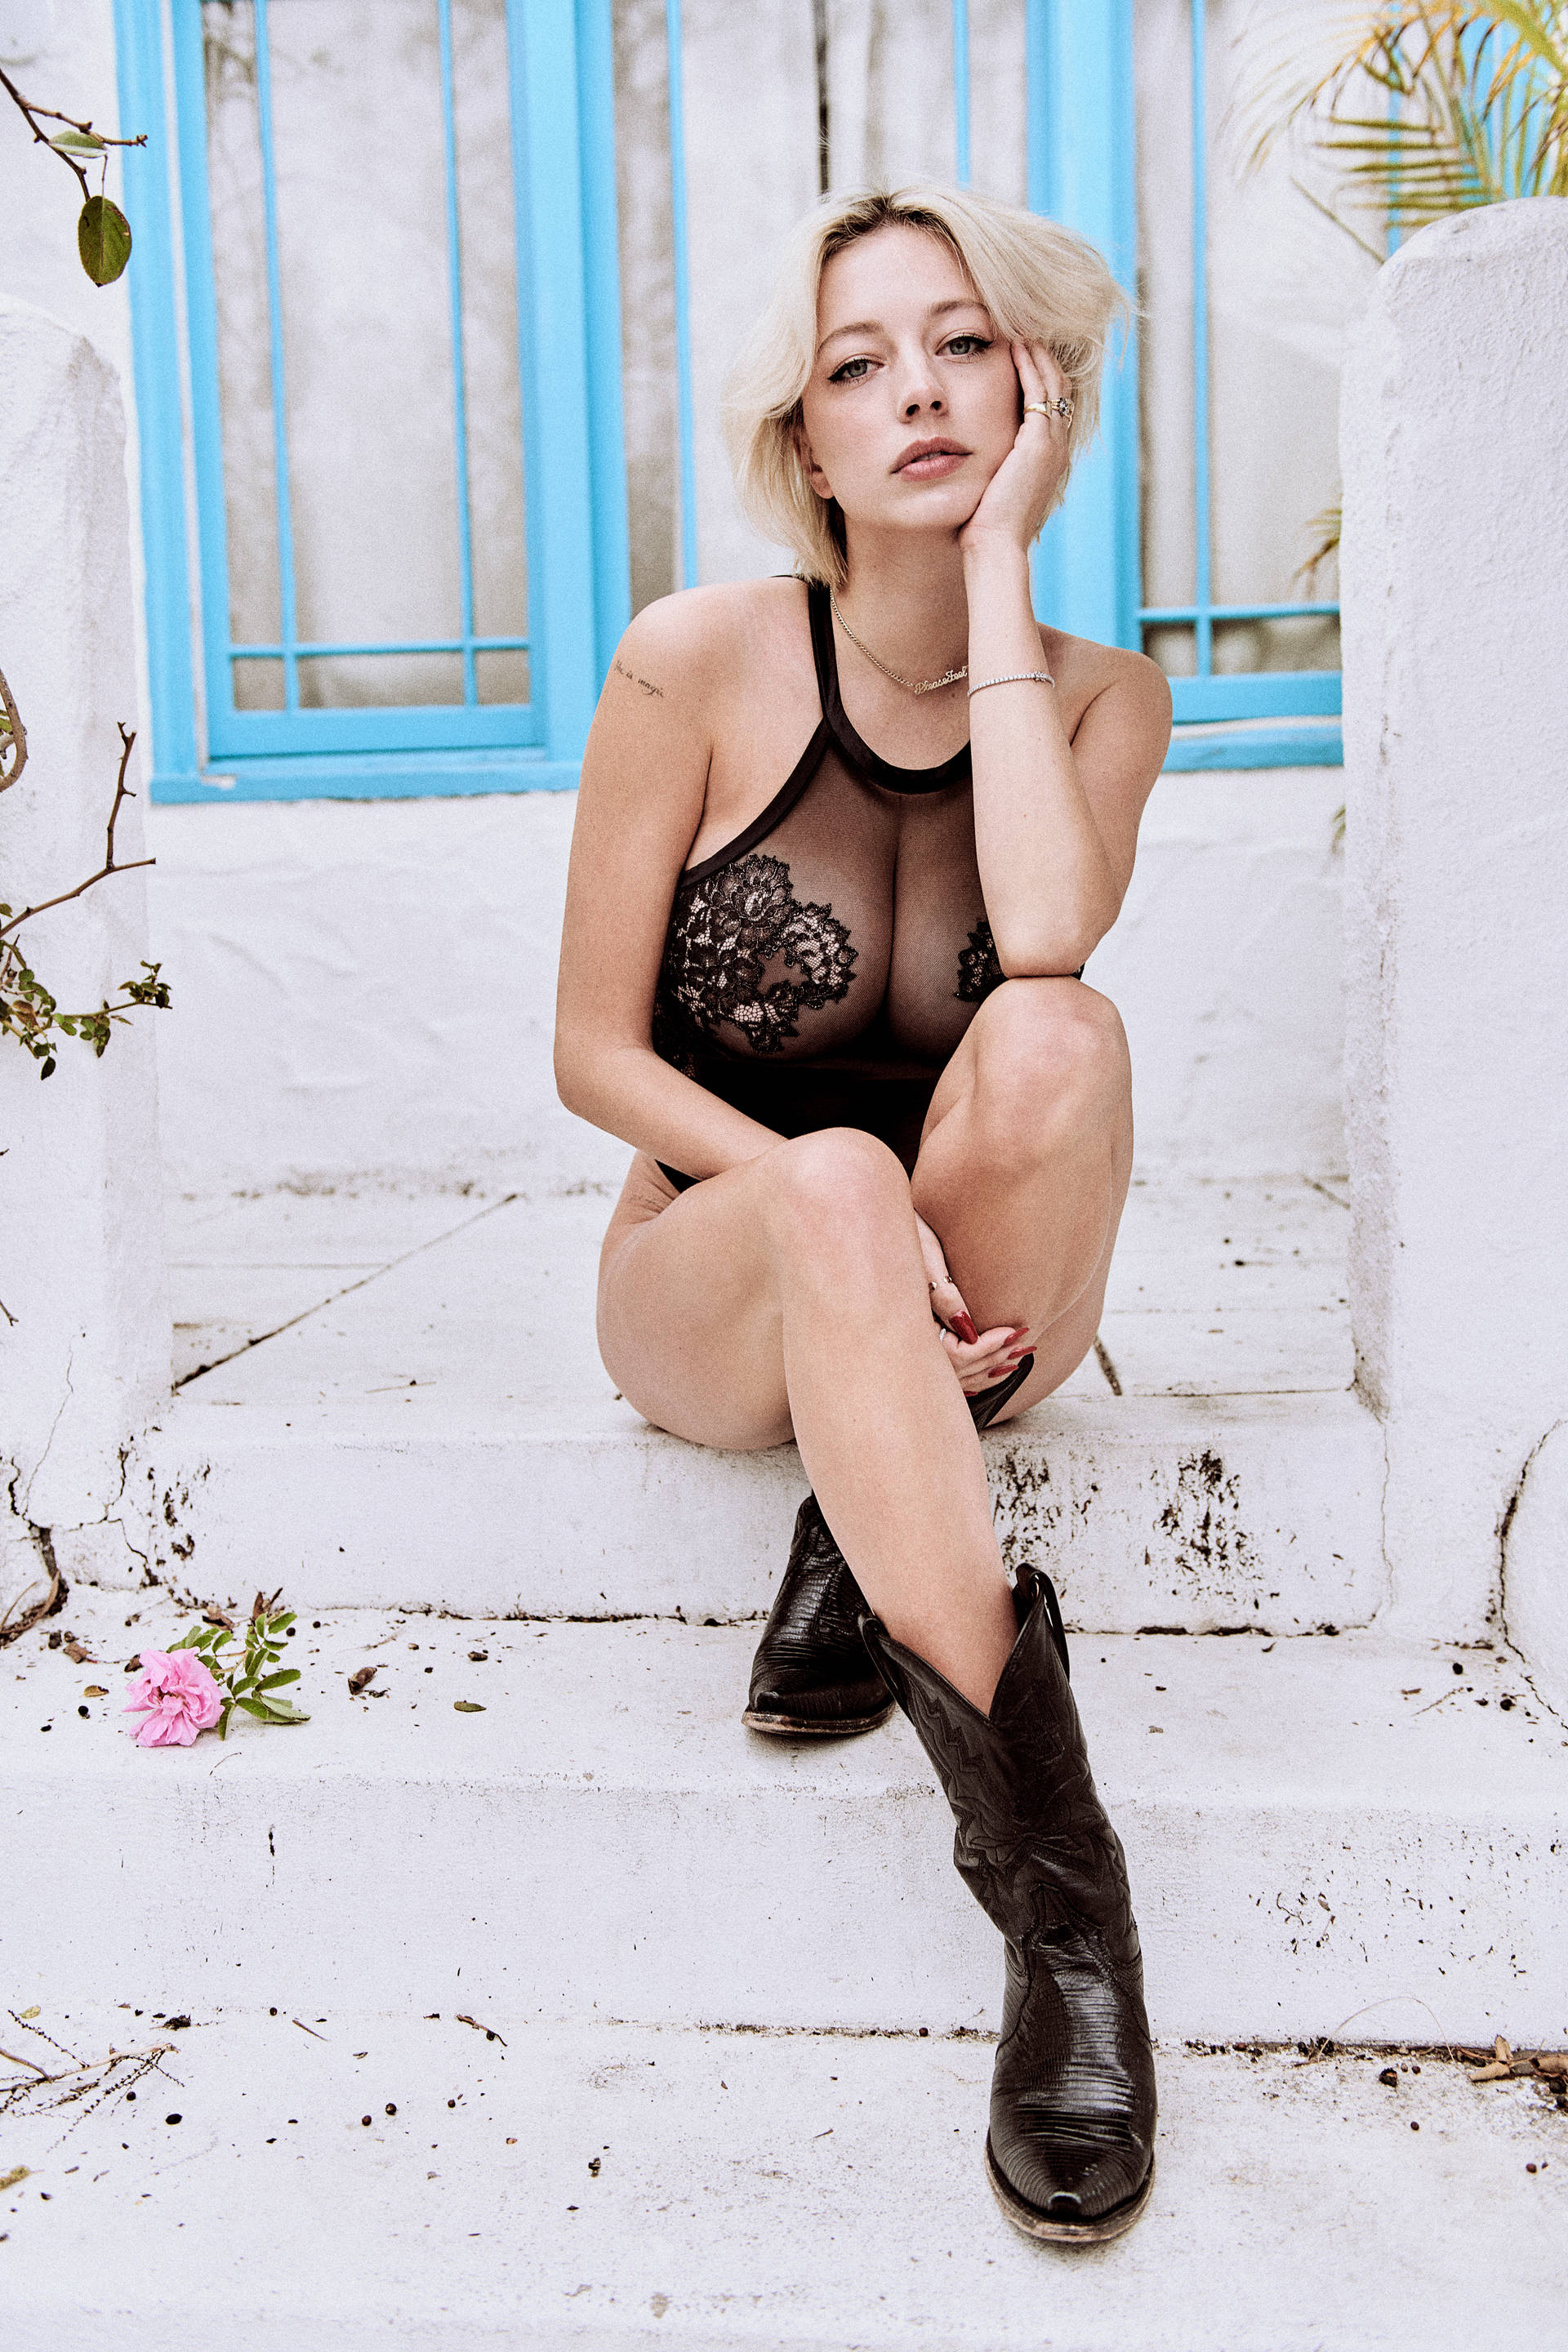 Caroline Vreeland Poses for Playboy